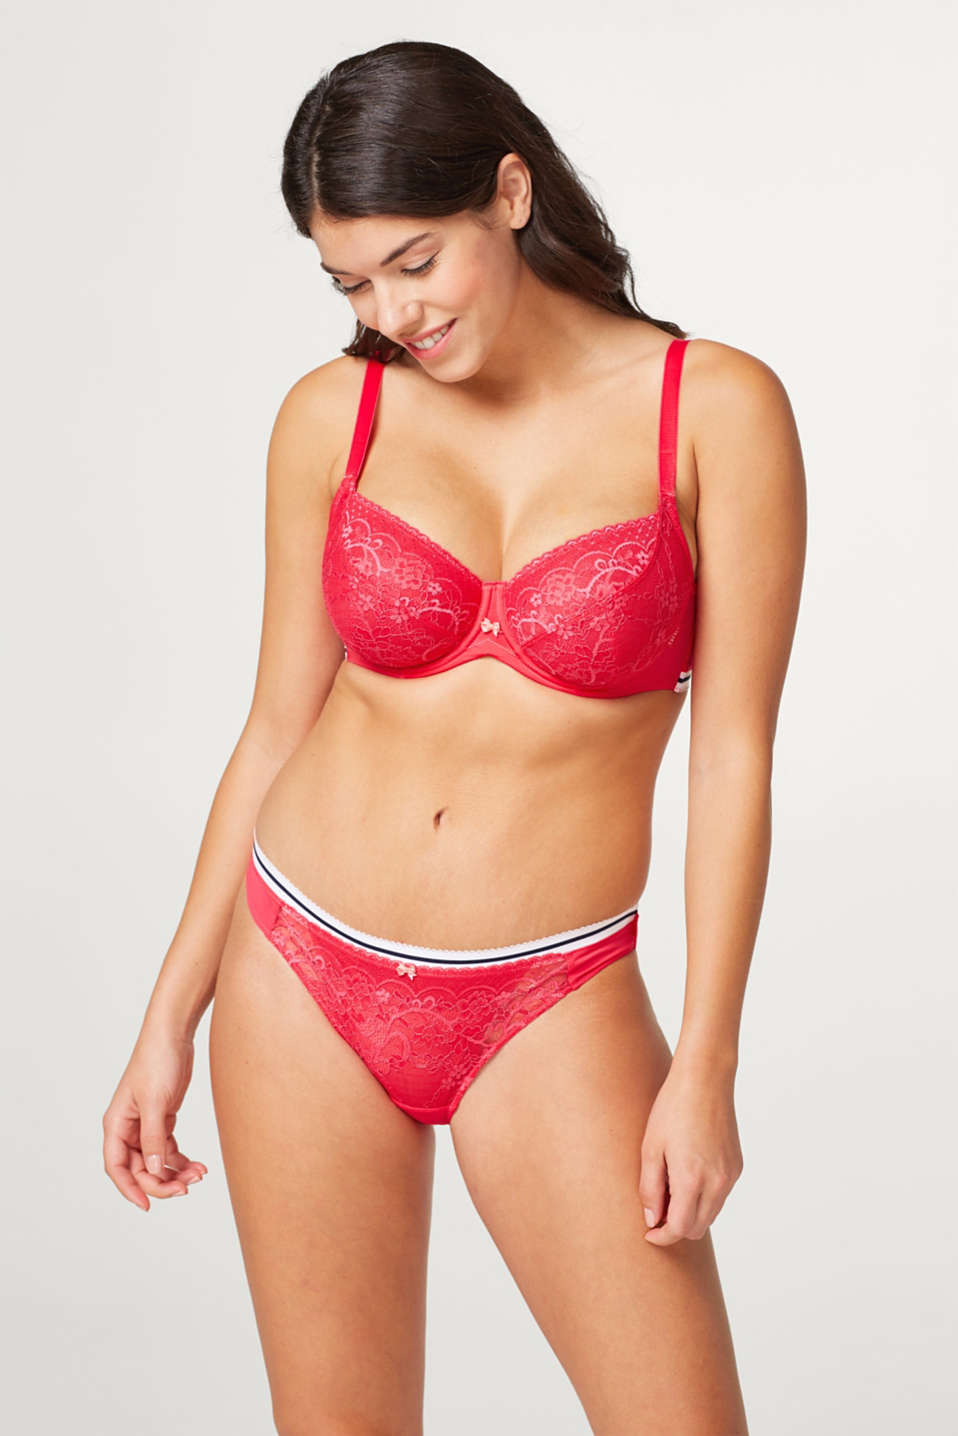 Esprit - Unpadded underwire bra in lace, made especially for larger cup sizes